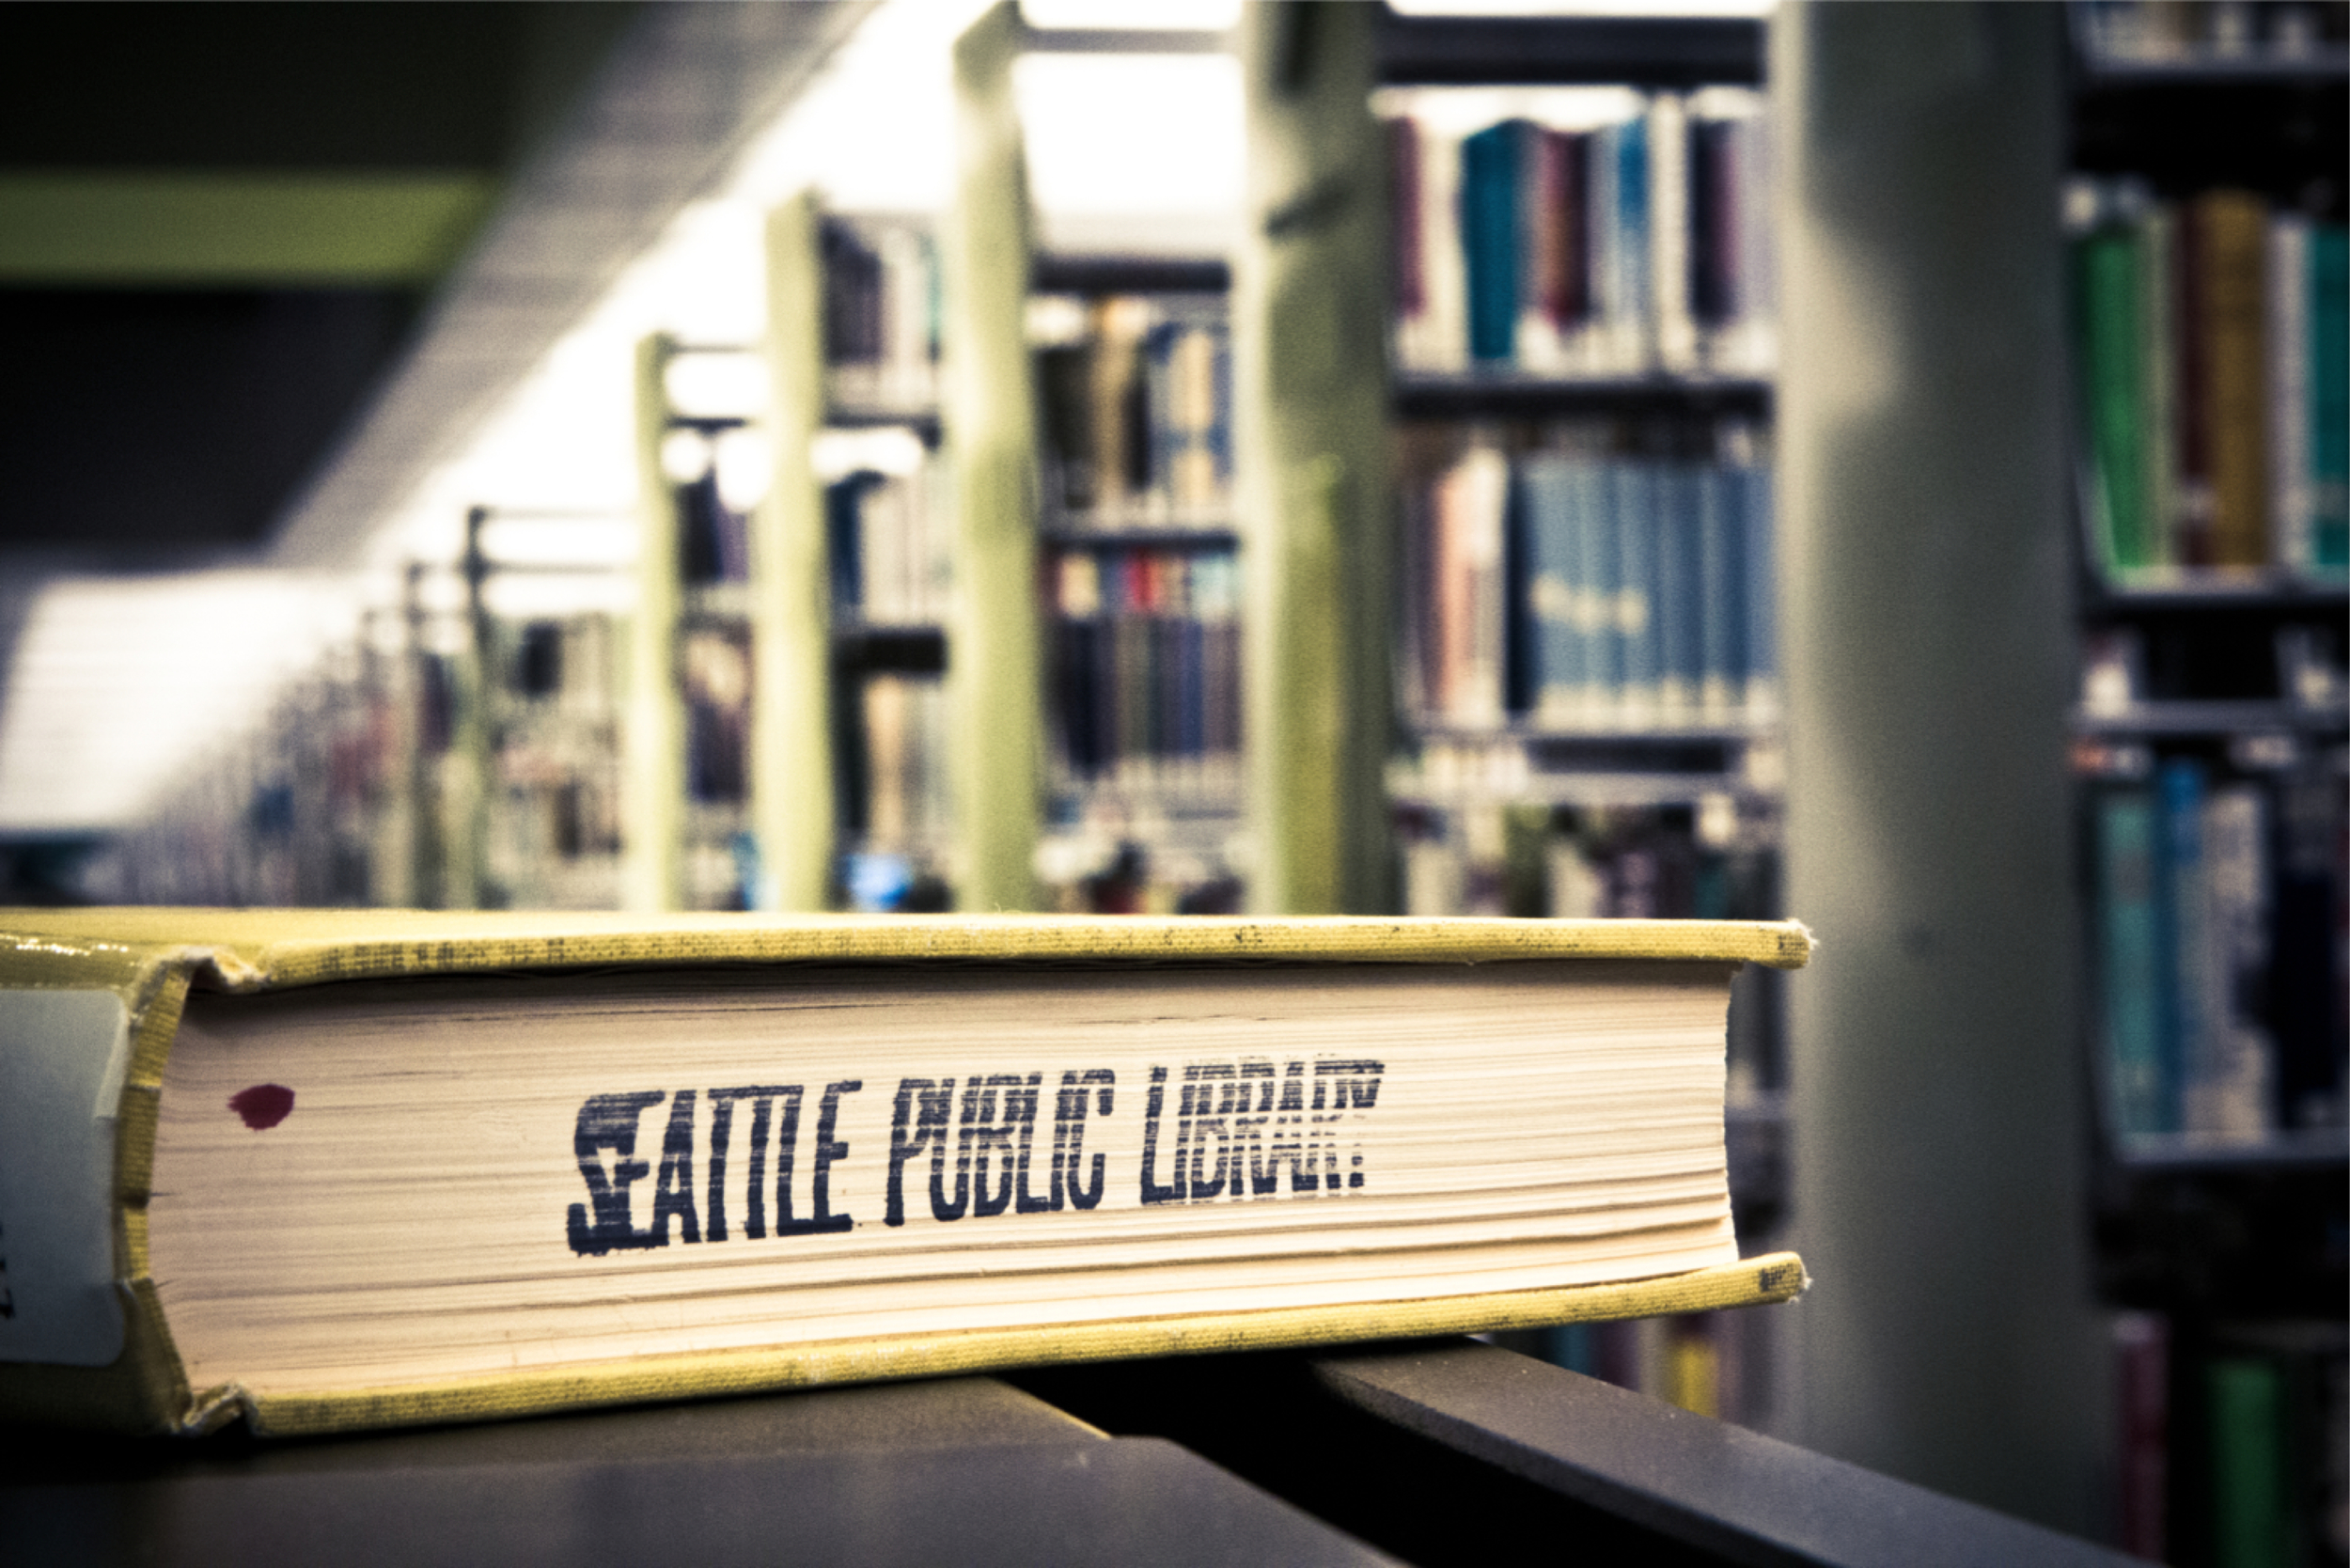 SeattlePublicLibraryMS0001.jpg